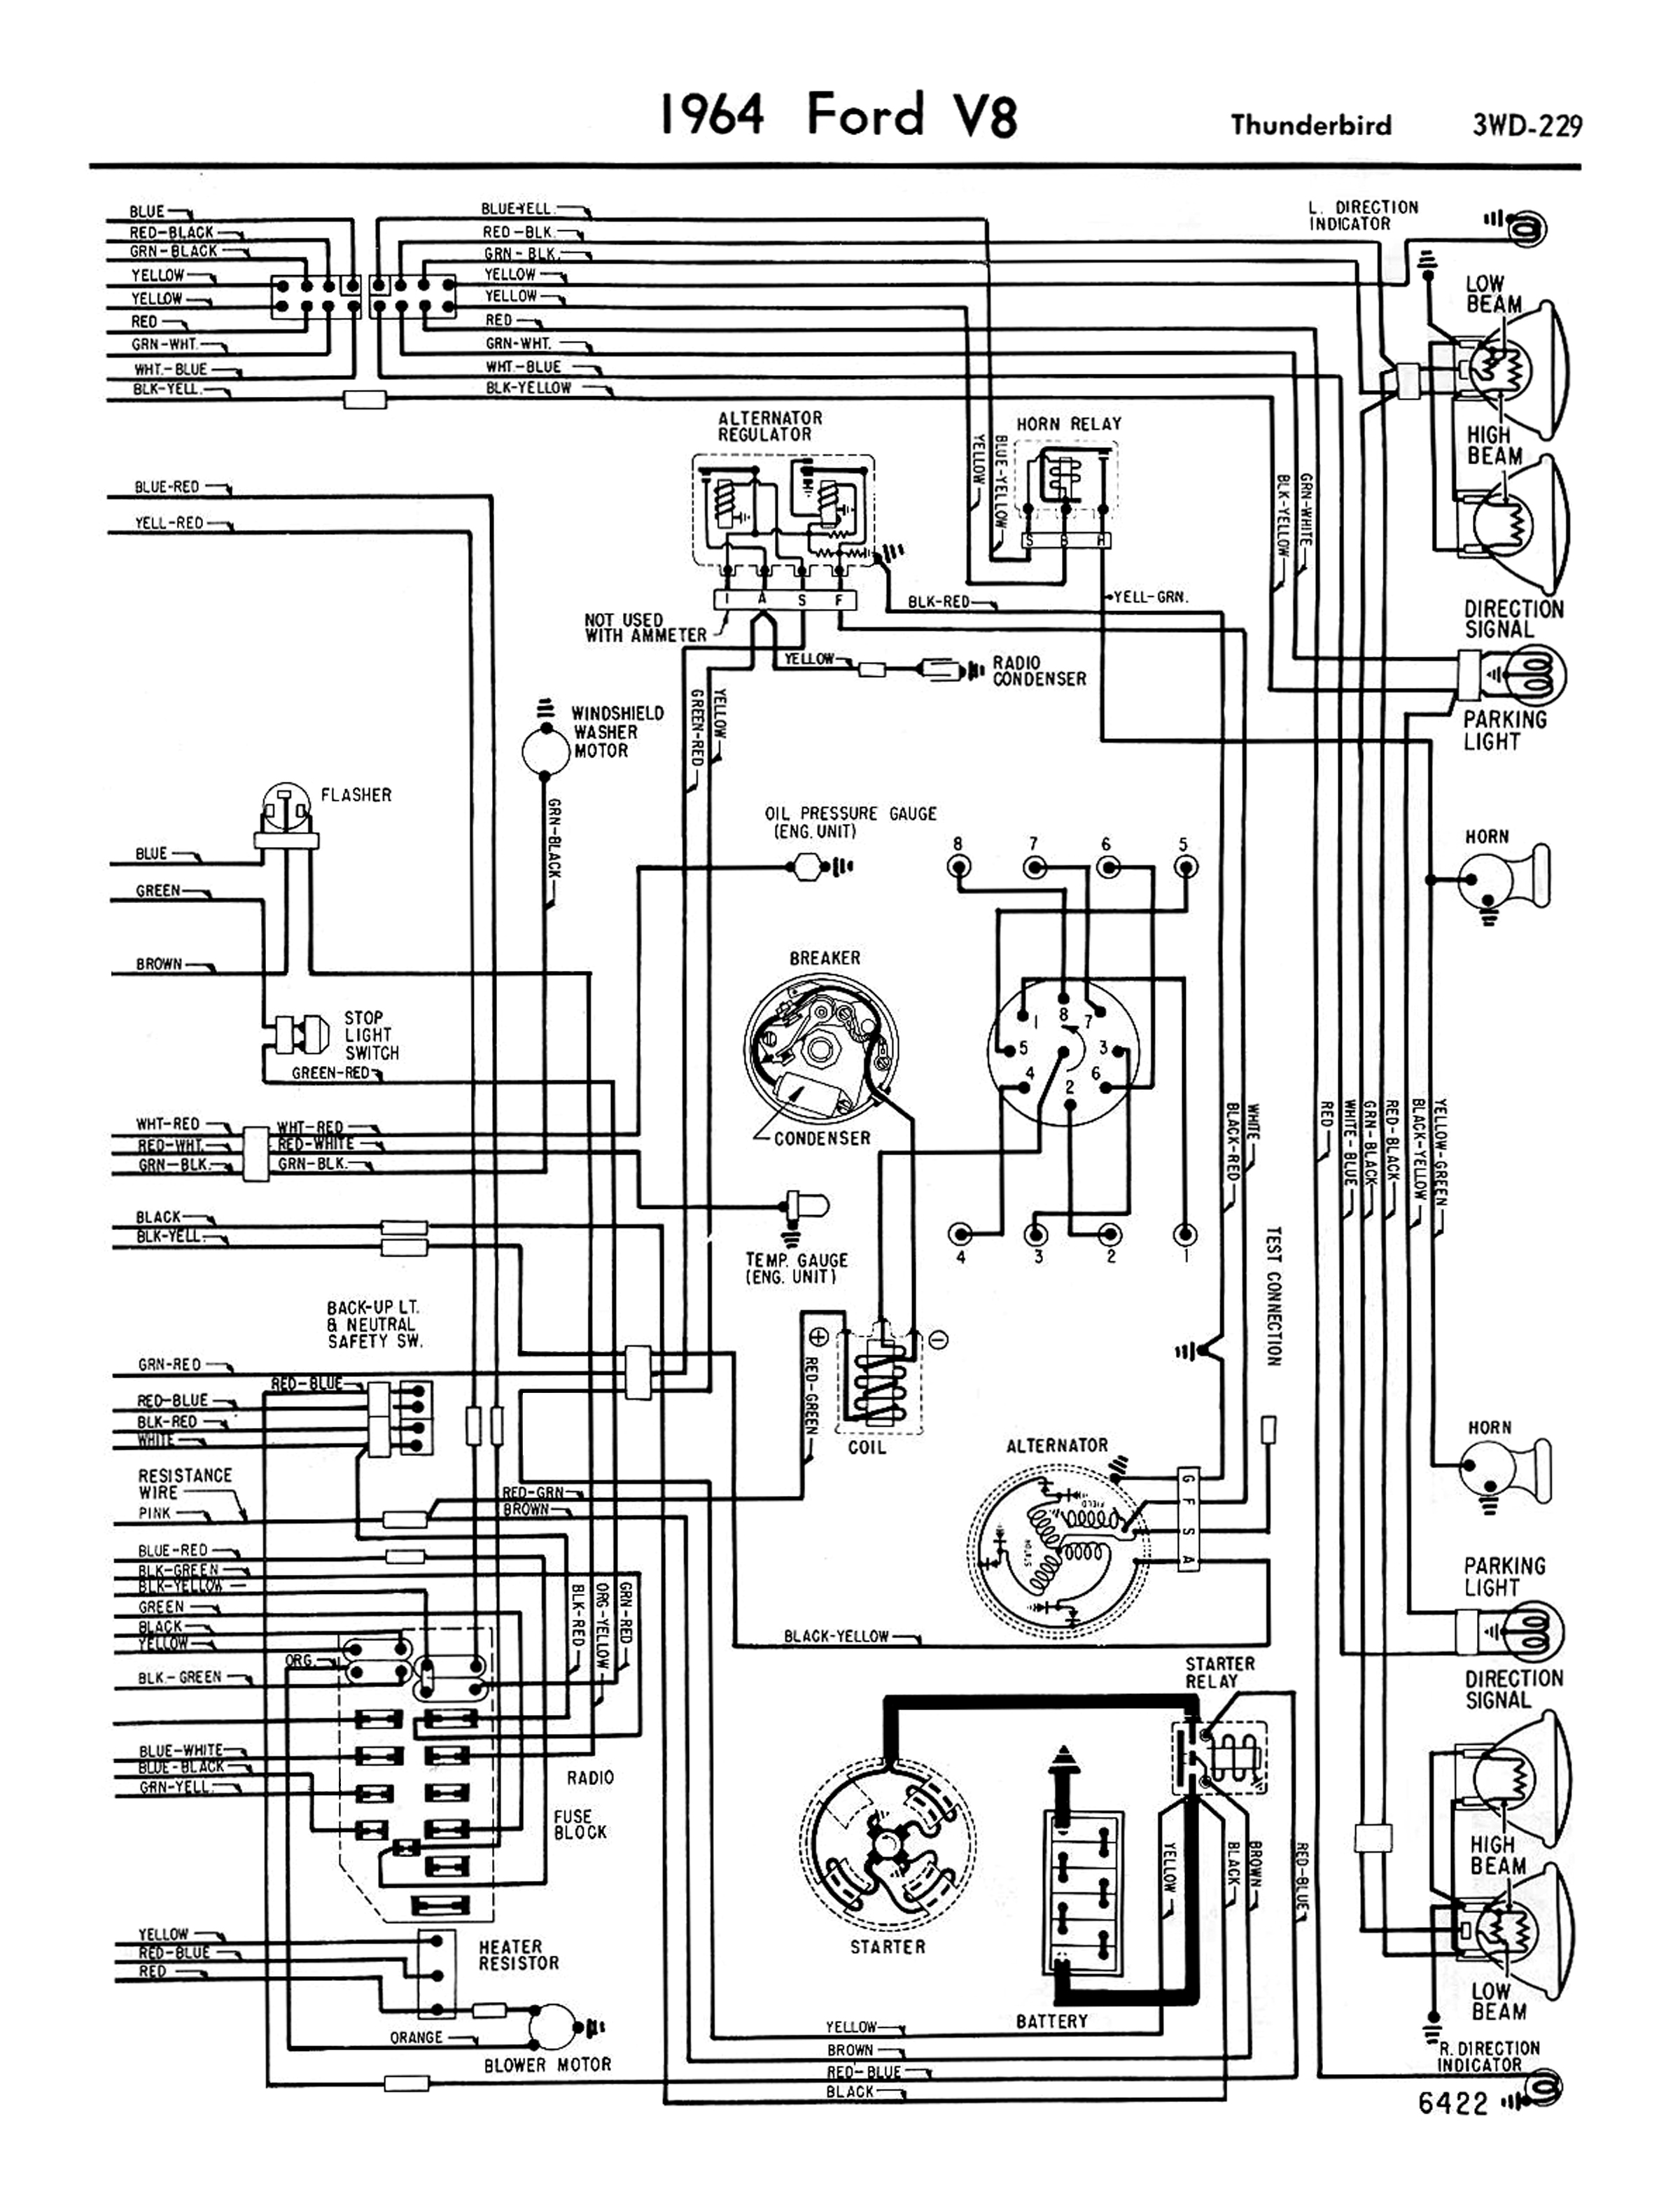 1958 68 ford electrical schematics rh squarebirds org 1988 thunderbird  transmission wiring diagram 1966 ford f